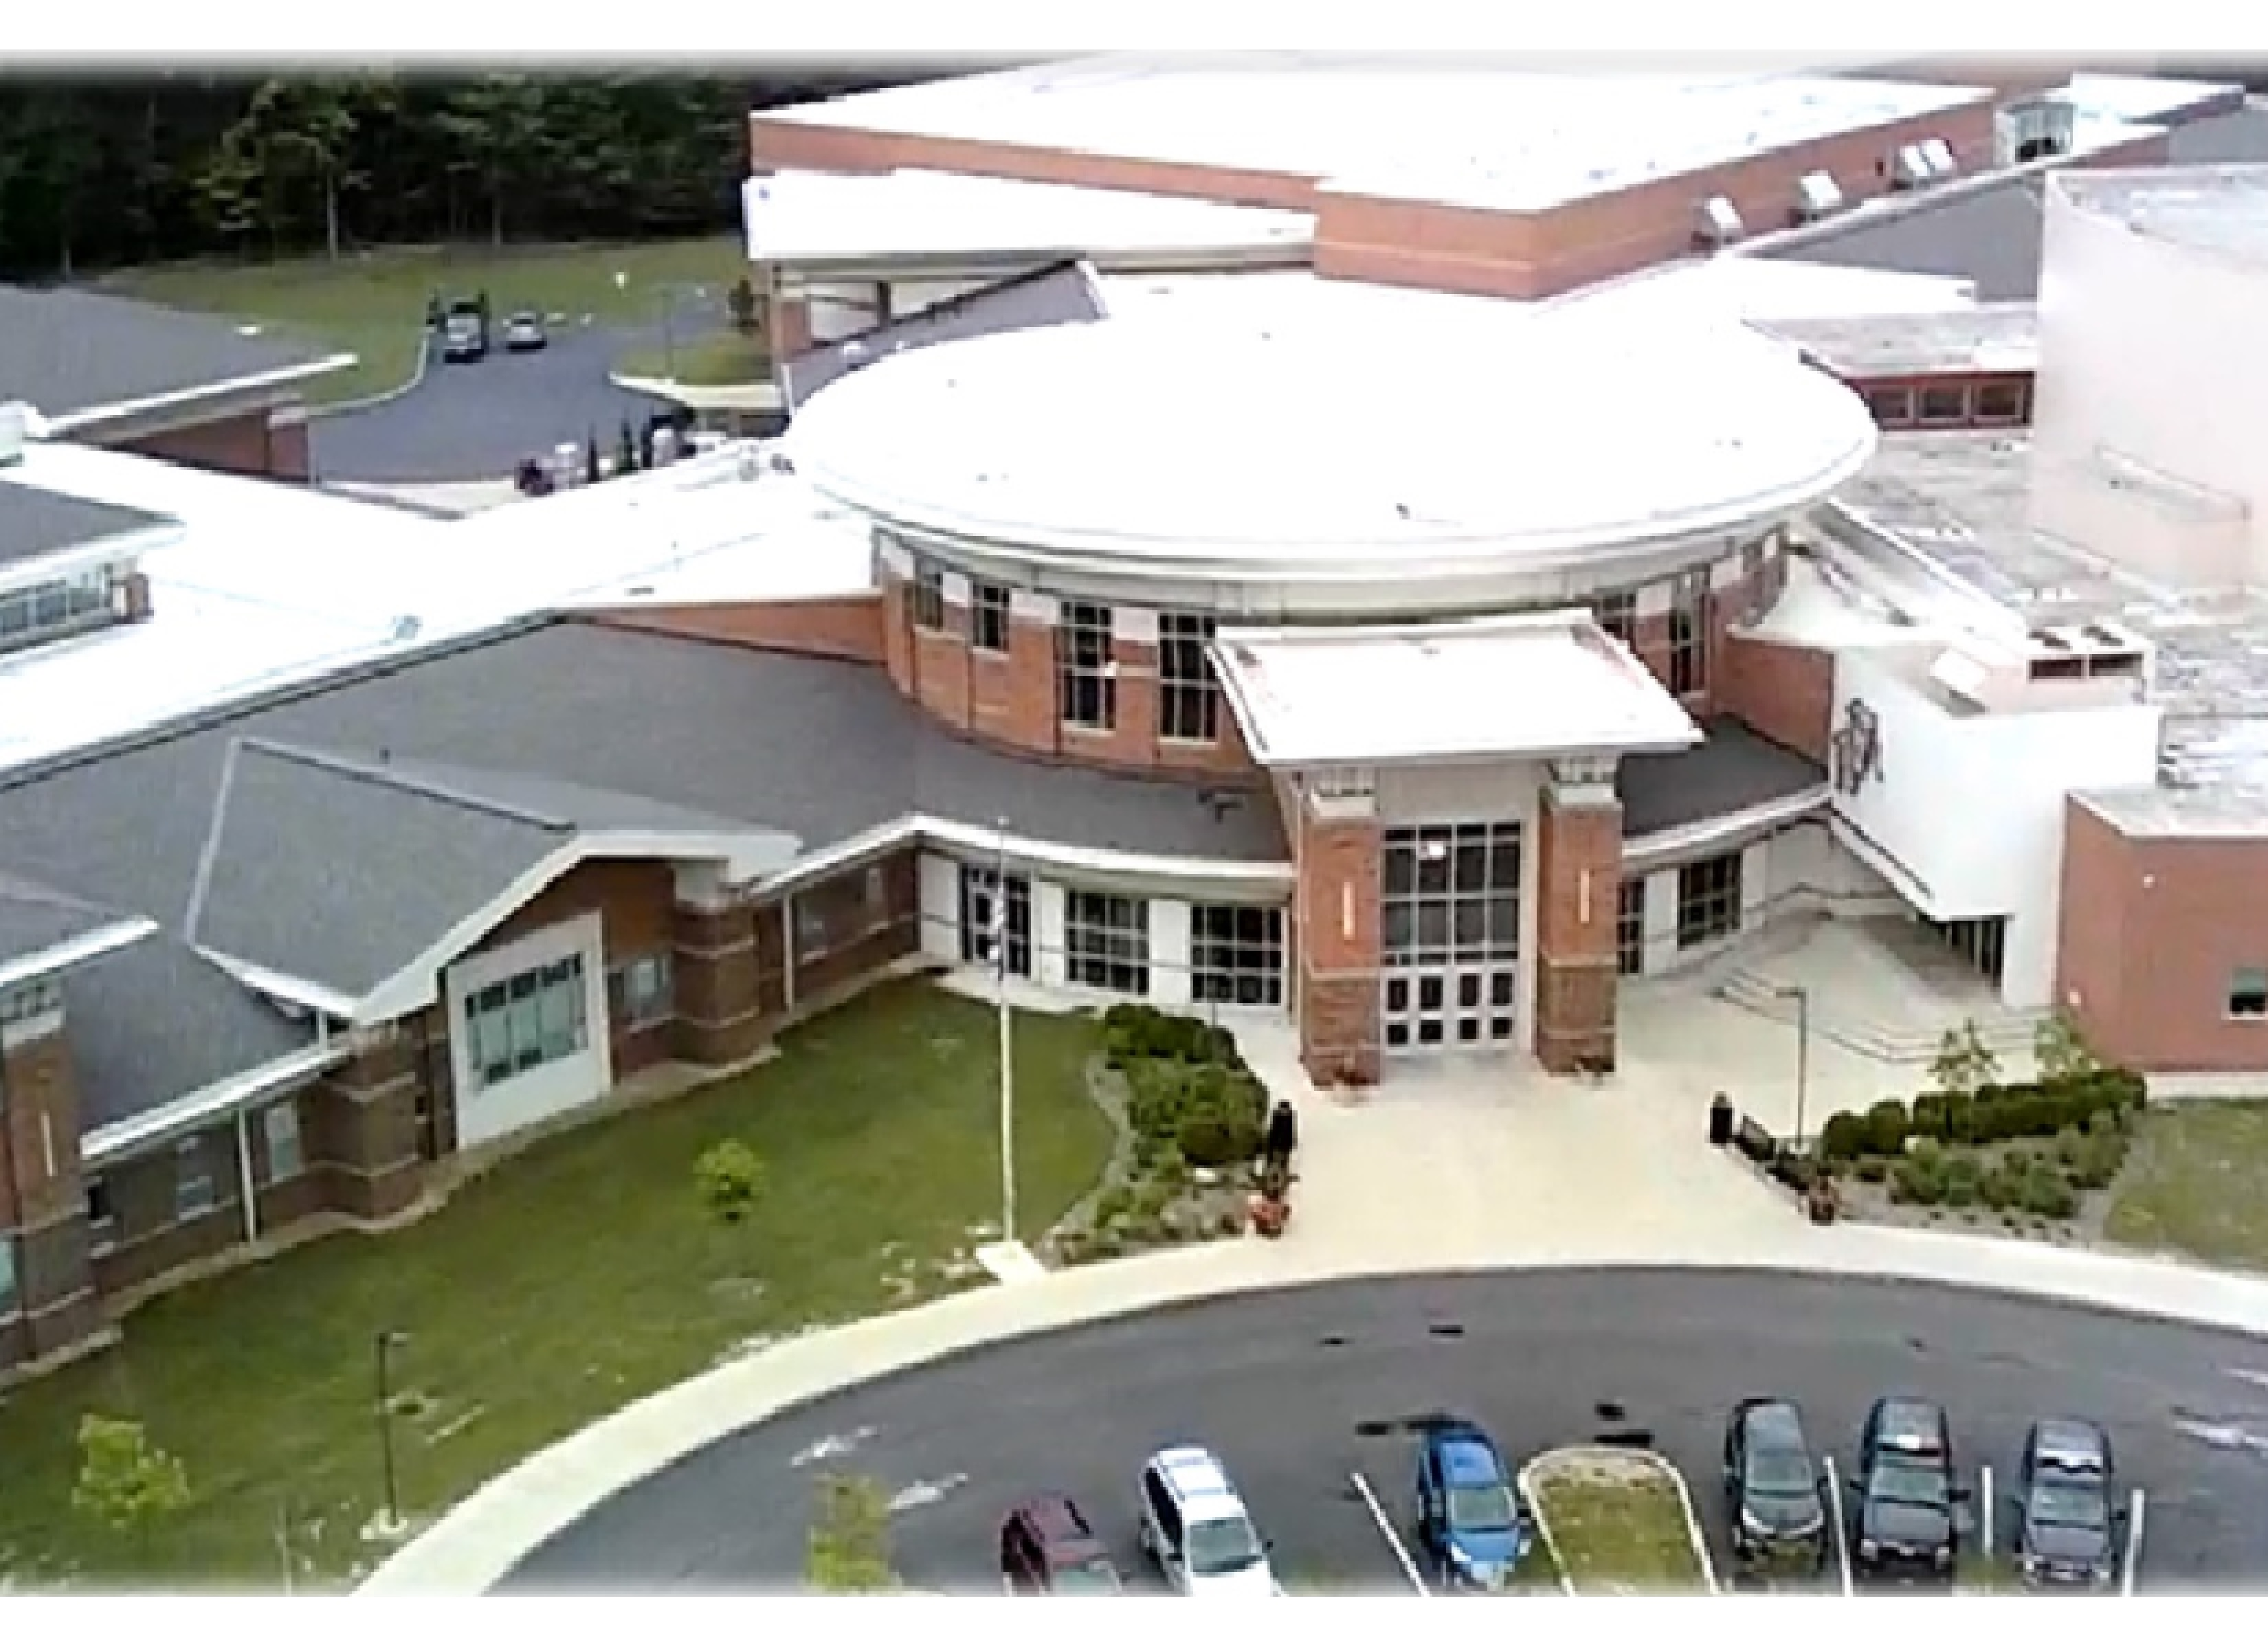 Aerial View of WHS taken with Blue jay drone